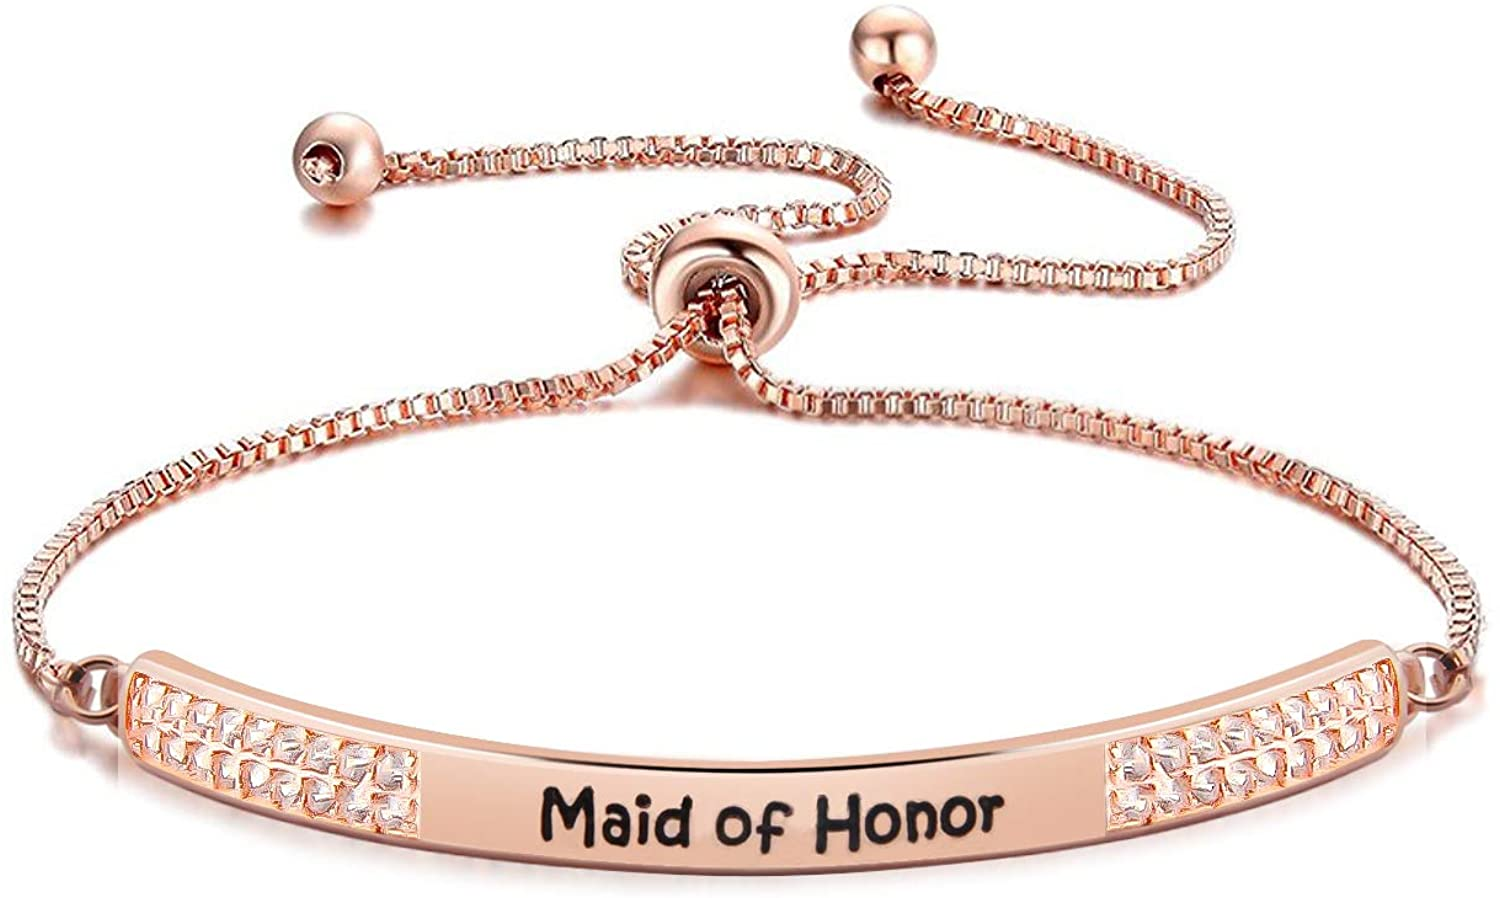 Maid of Honor Sister Bracelet with Slider Bridal Party Thank You Gift